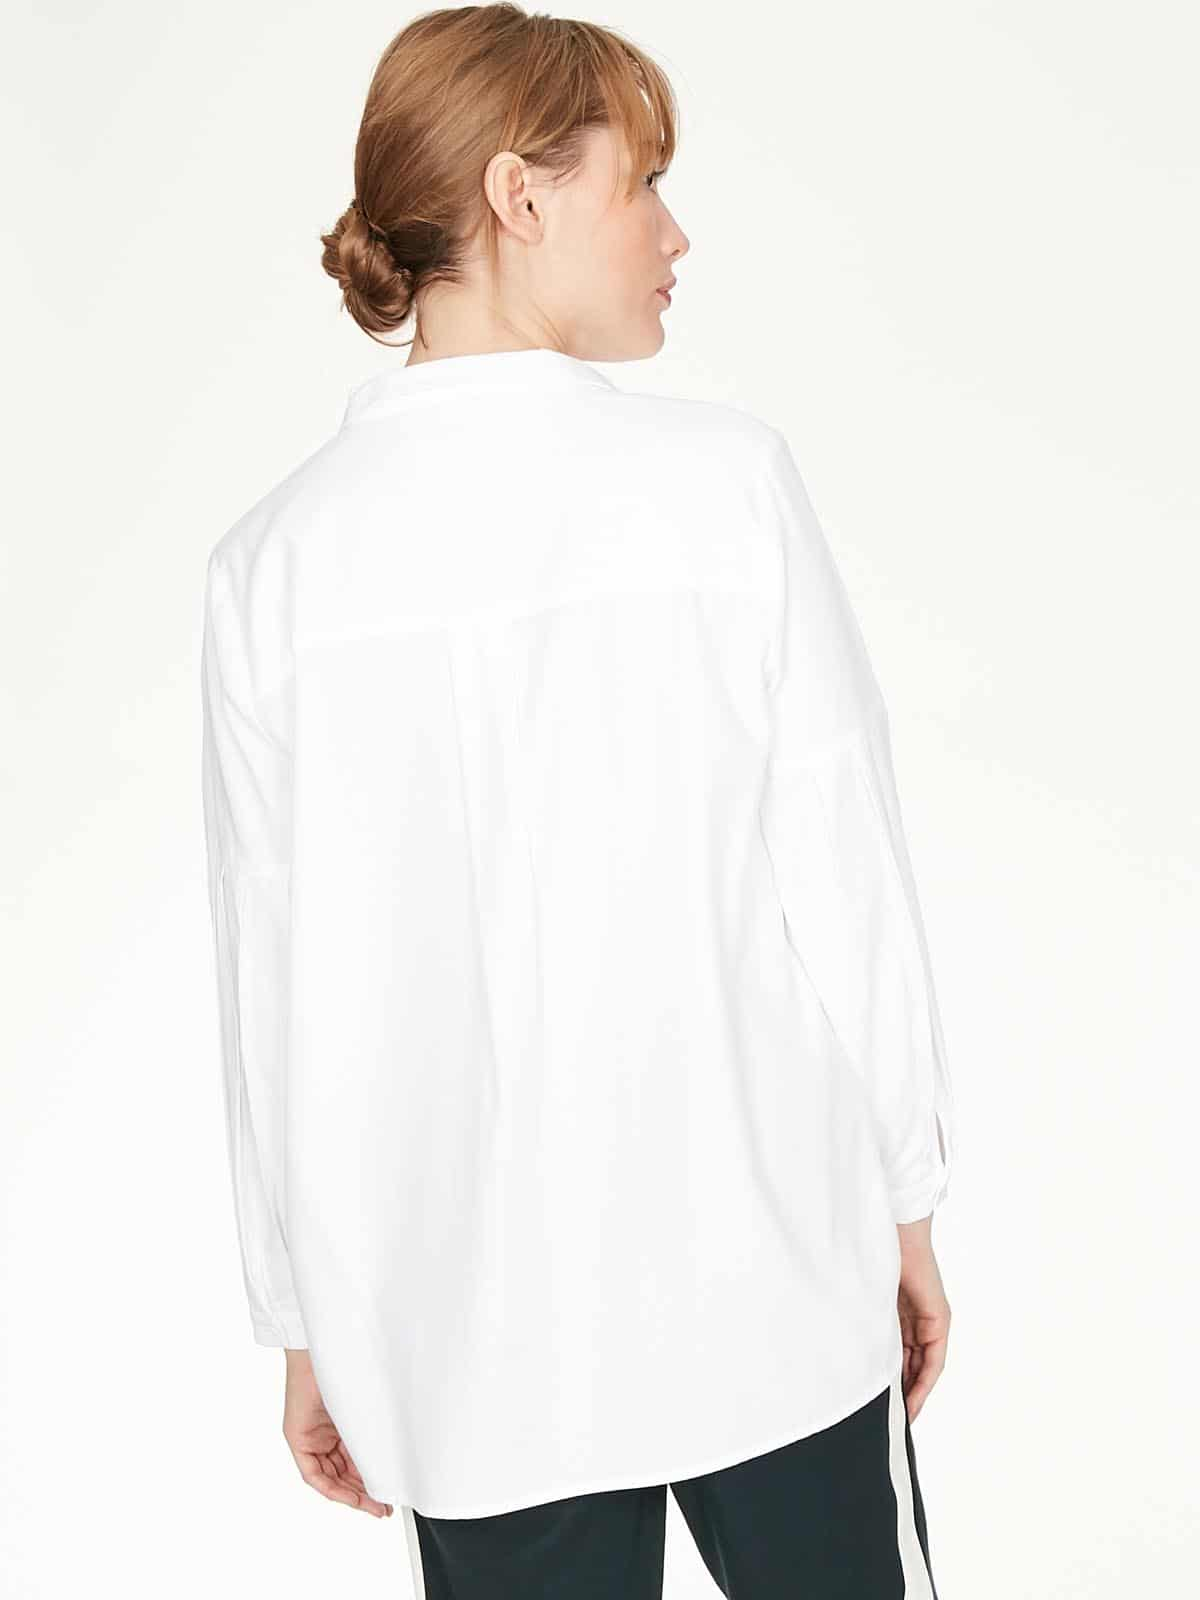 WWT5006-WHITE-Marion-Over-The-Head-Shirt-In-White-Organic-Cotton-3